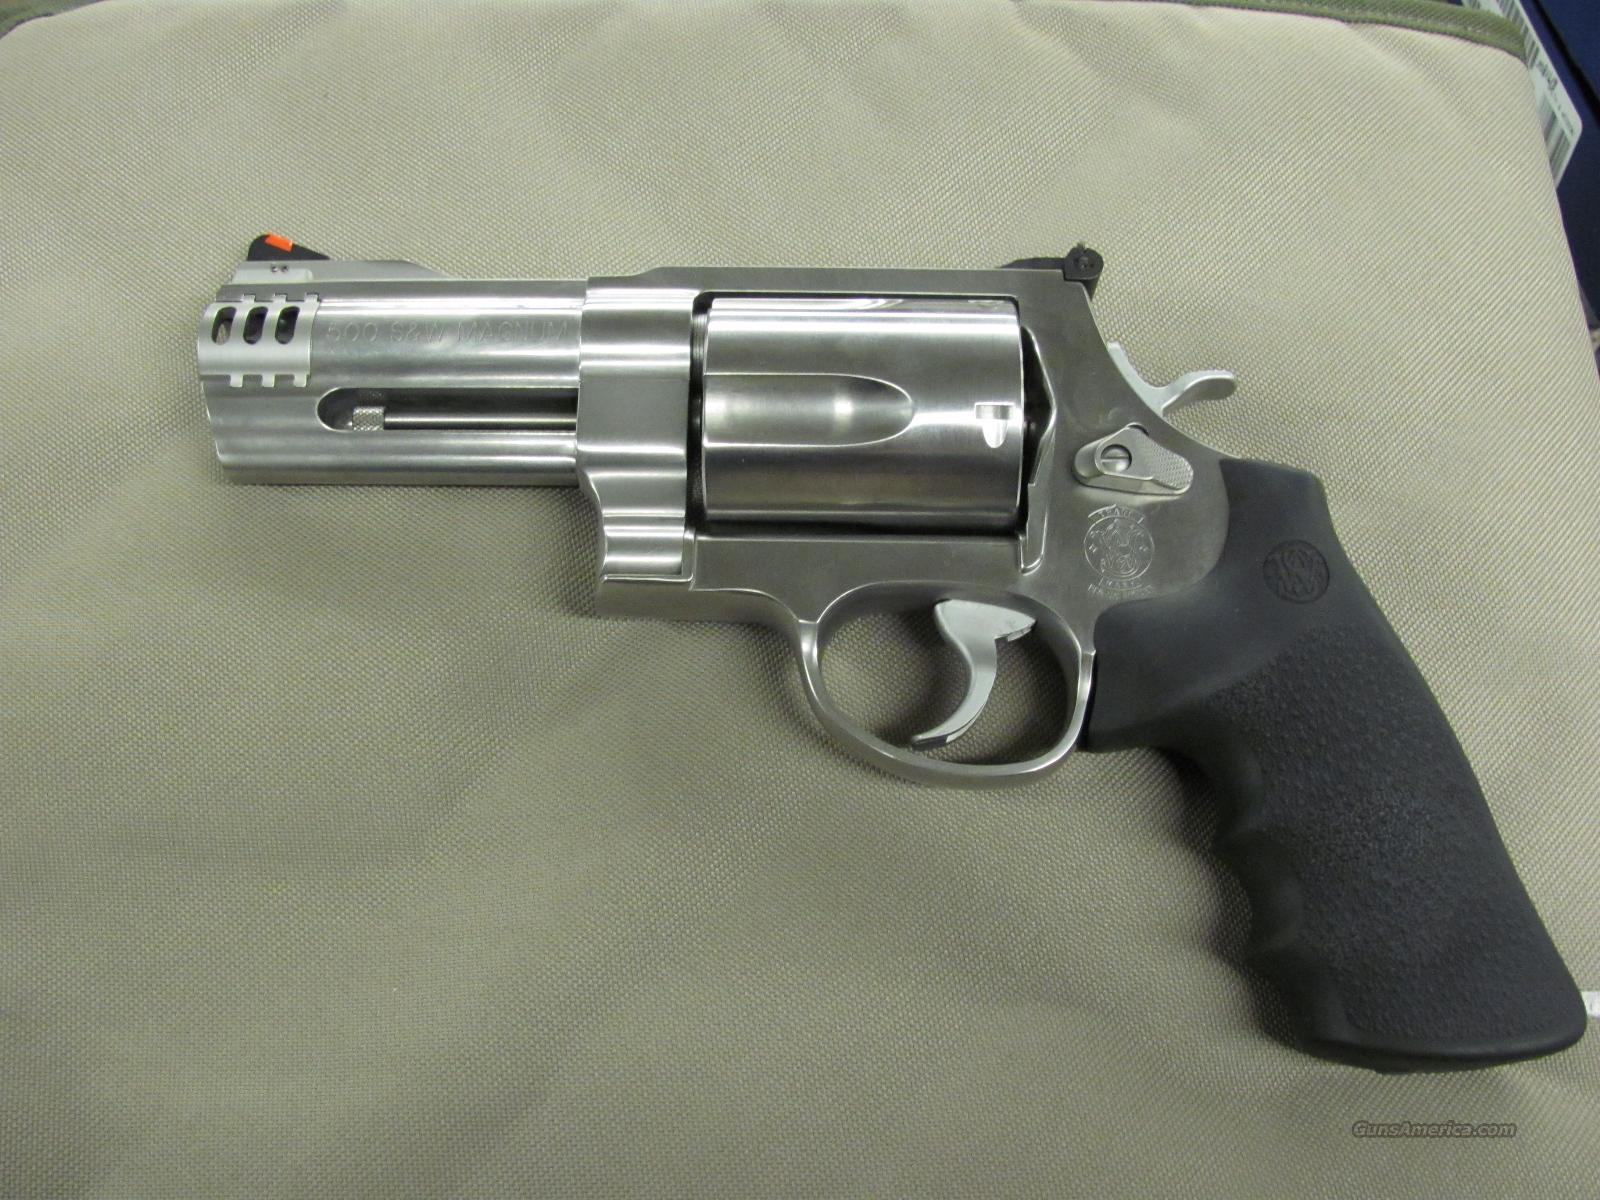 Smith & Wesson Model 500 4 inch  **NEW**  Guns > Pistols > Smith & Wesson Revolvers > Full Frame Revolver